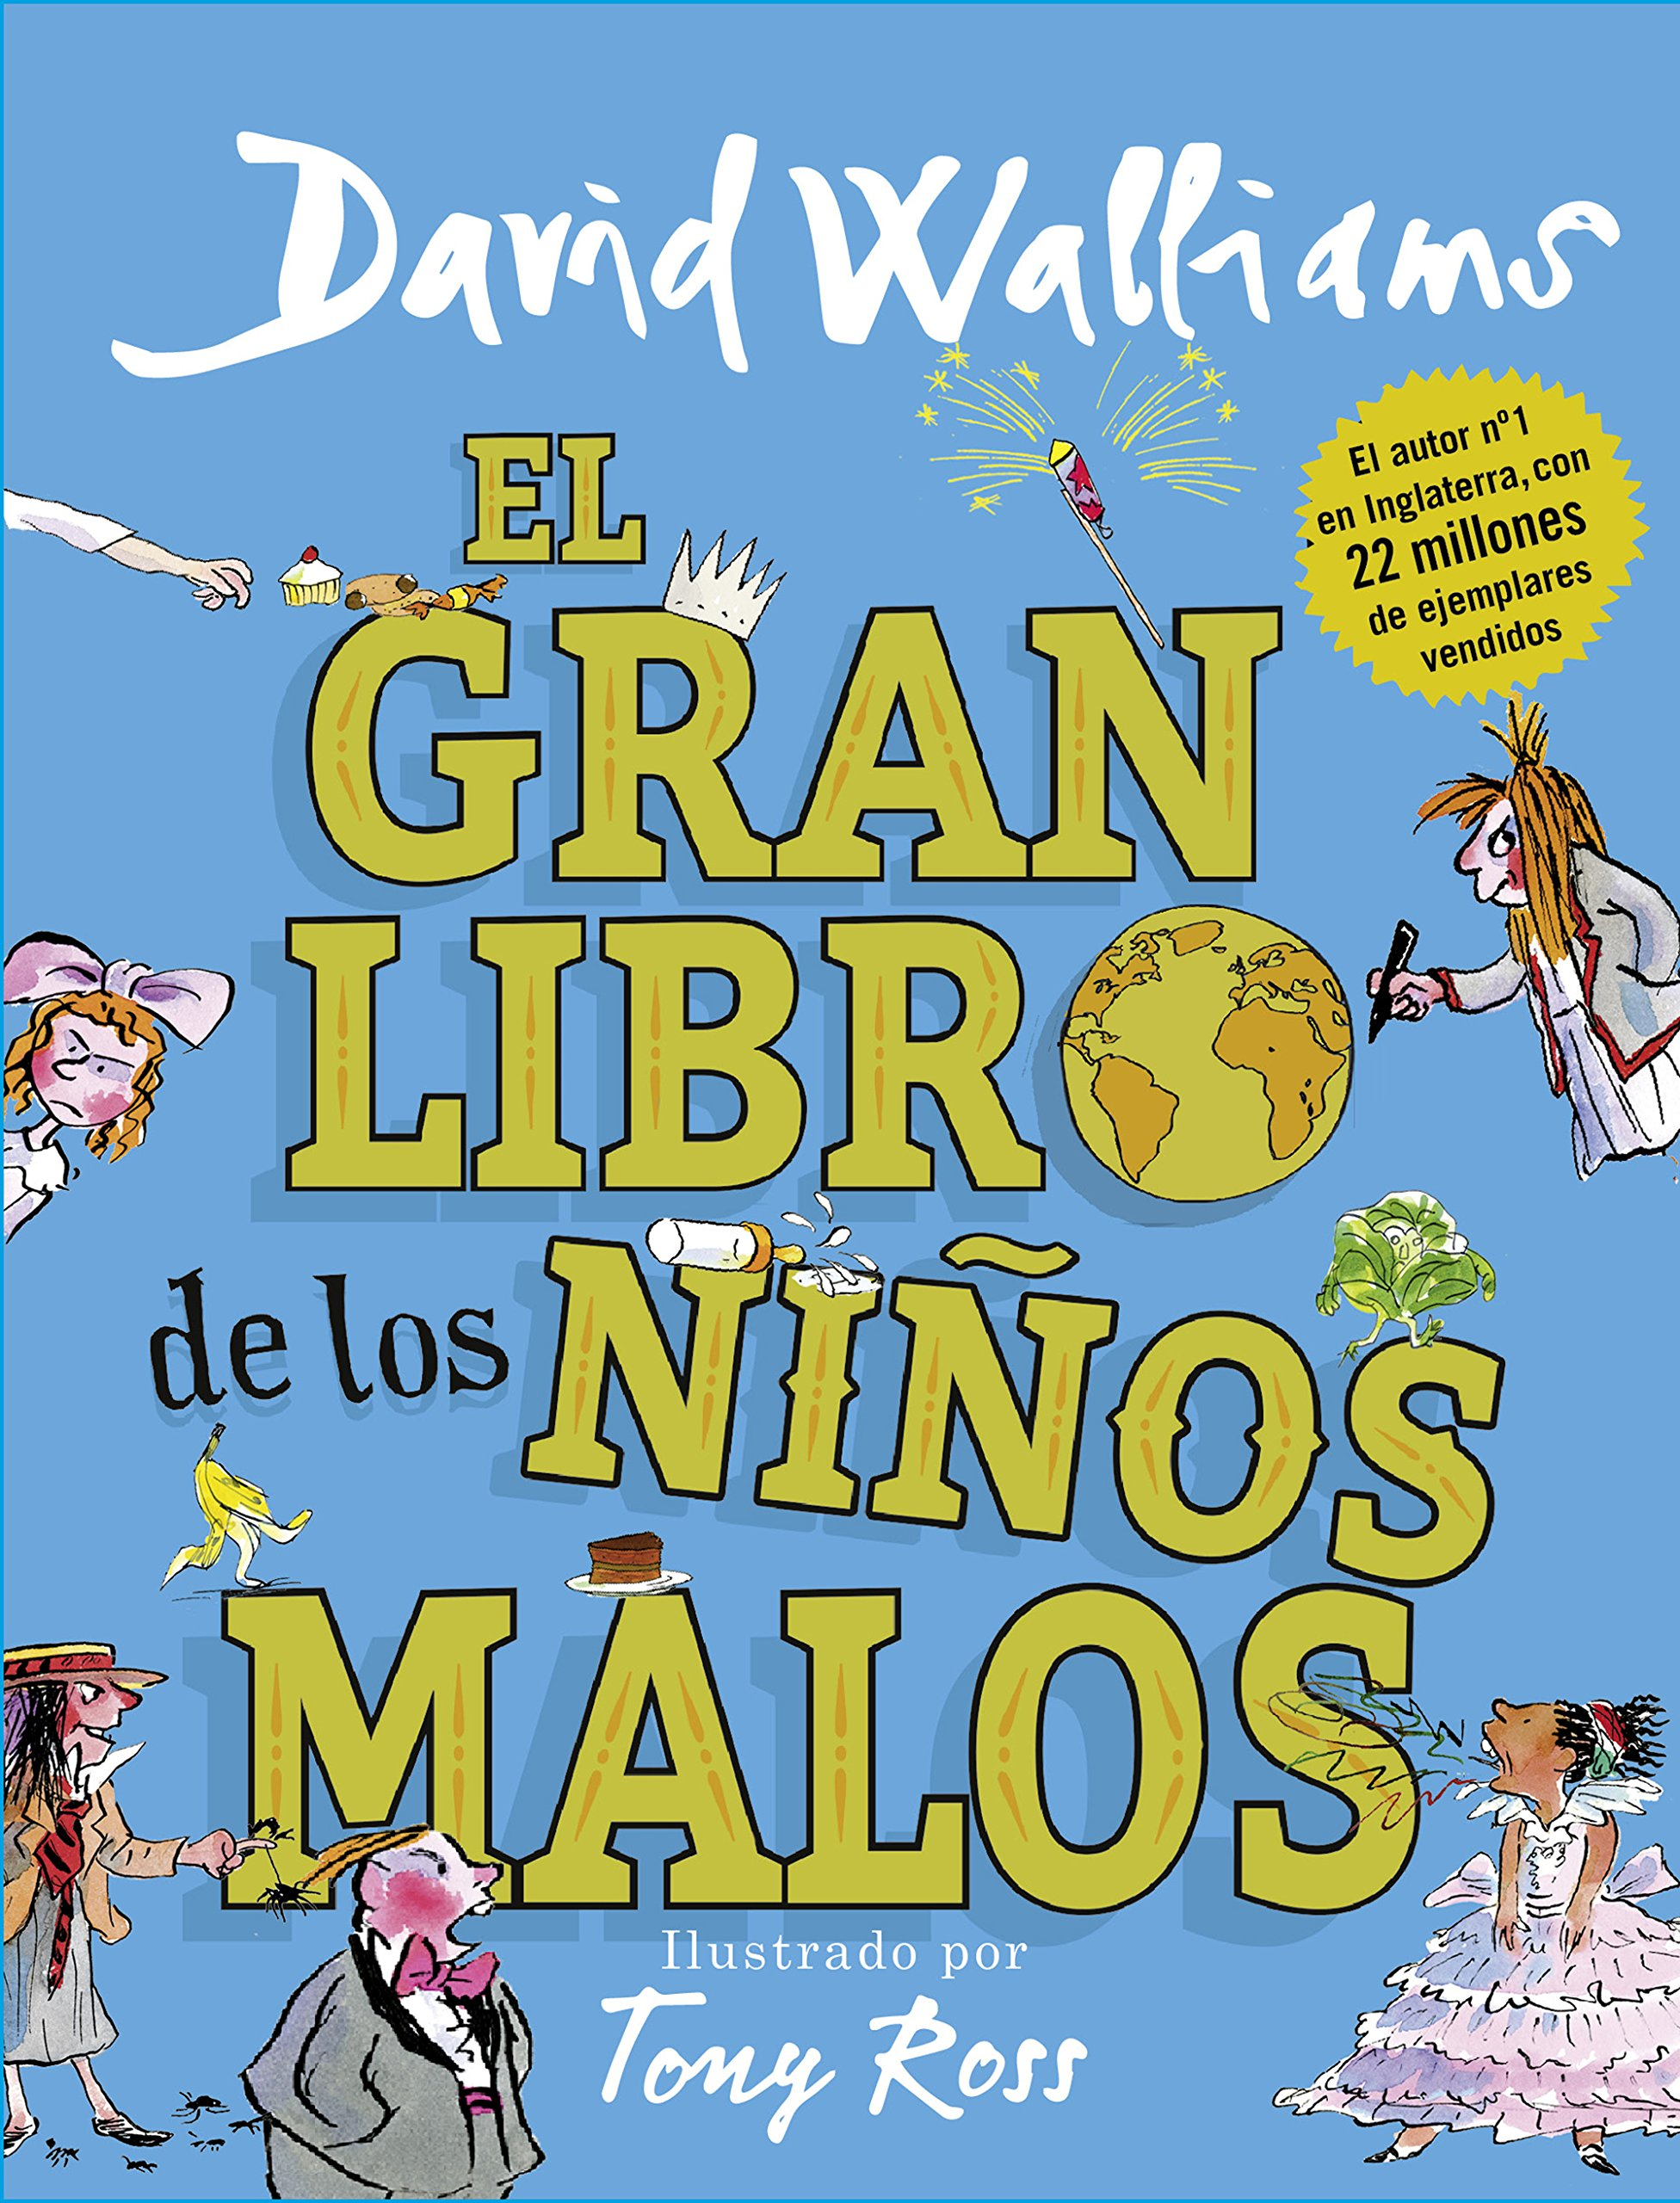 El gran libro de los niños malos Col·lecció David Walliams: Amazon.es: David Walliams, NOEMI/NO USAR; SOBREGUES ARIAS: Libros